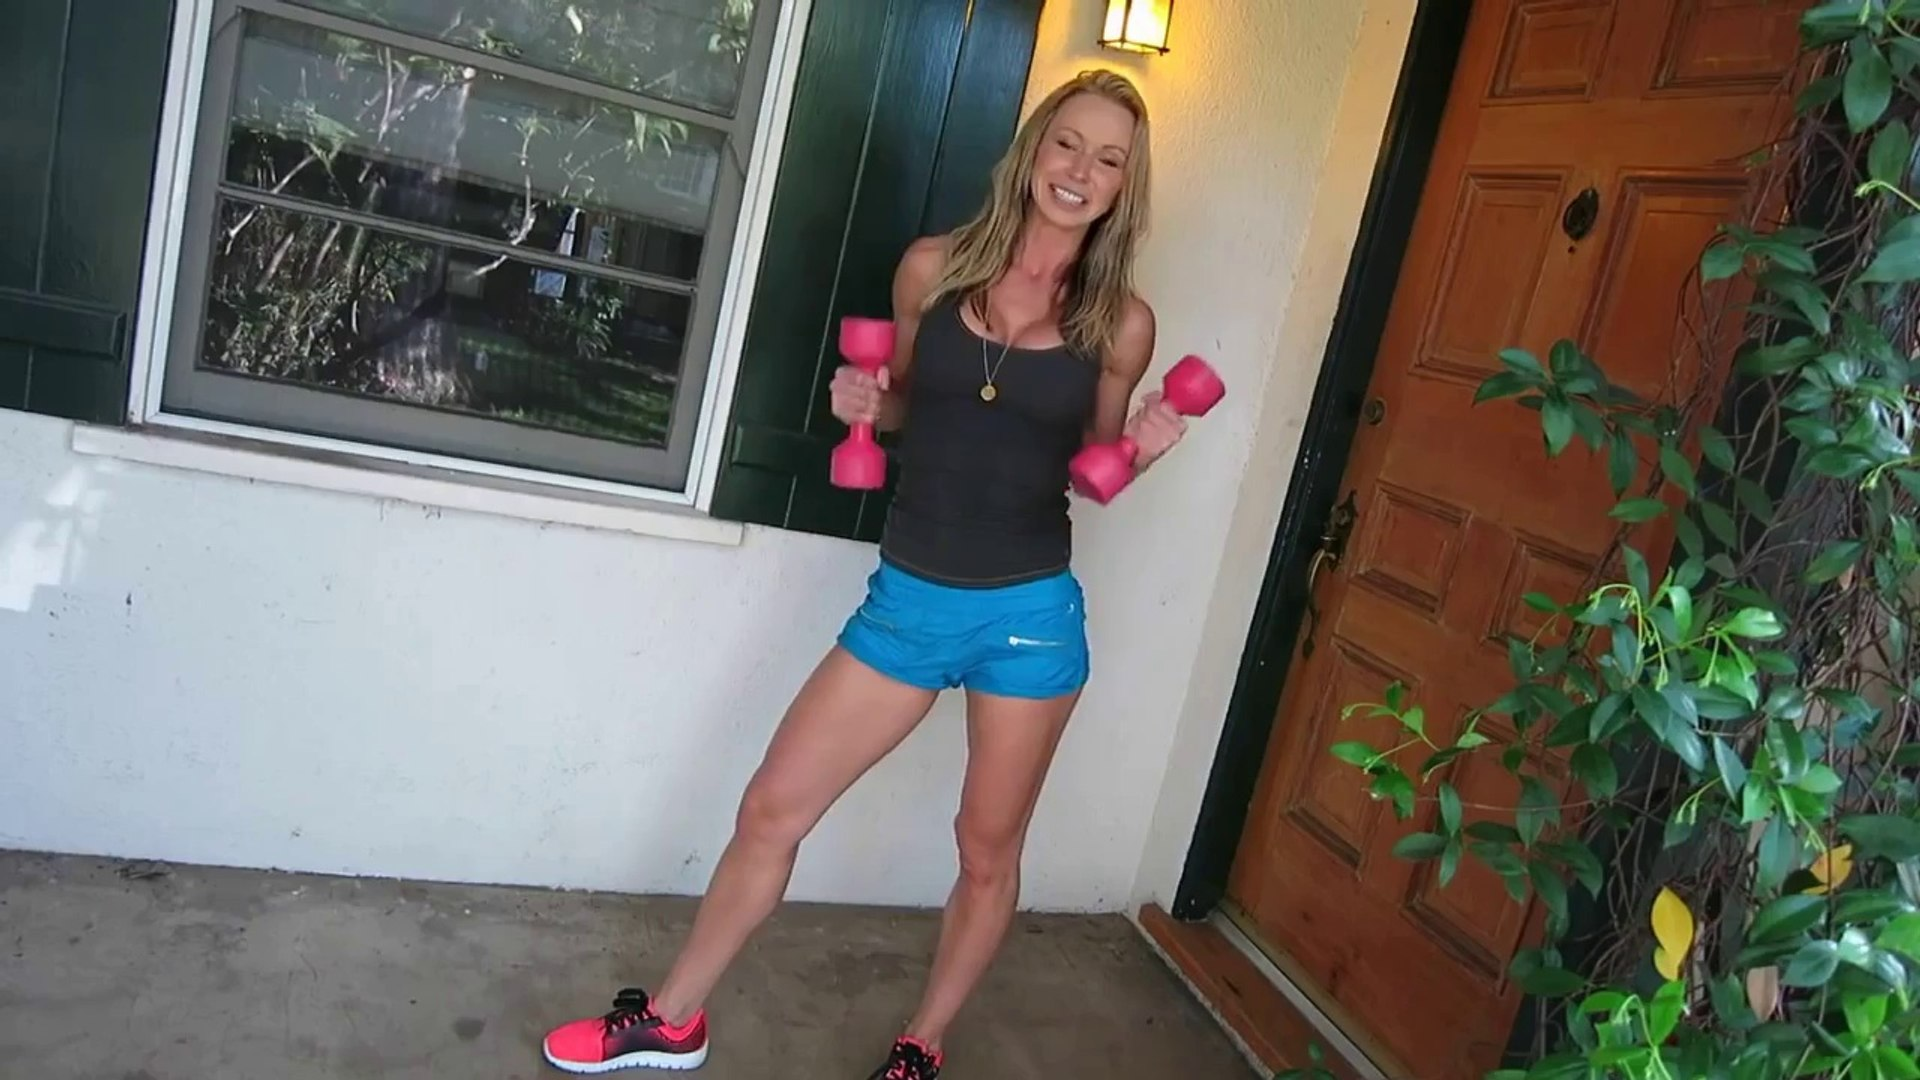 The Best Home Workout Routine Exercise Video of Daily Fitness